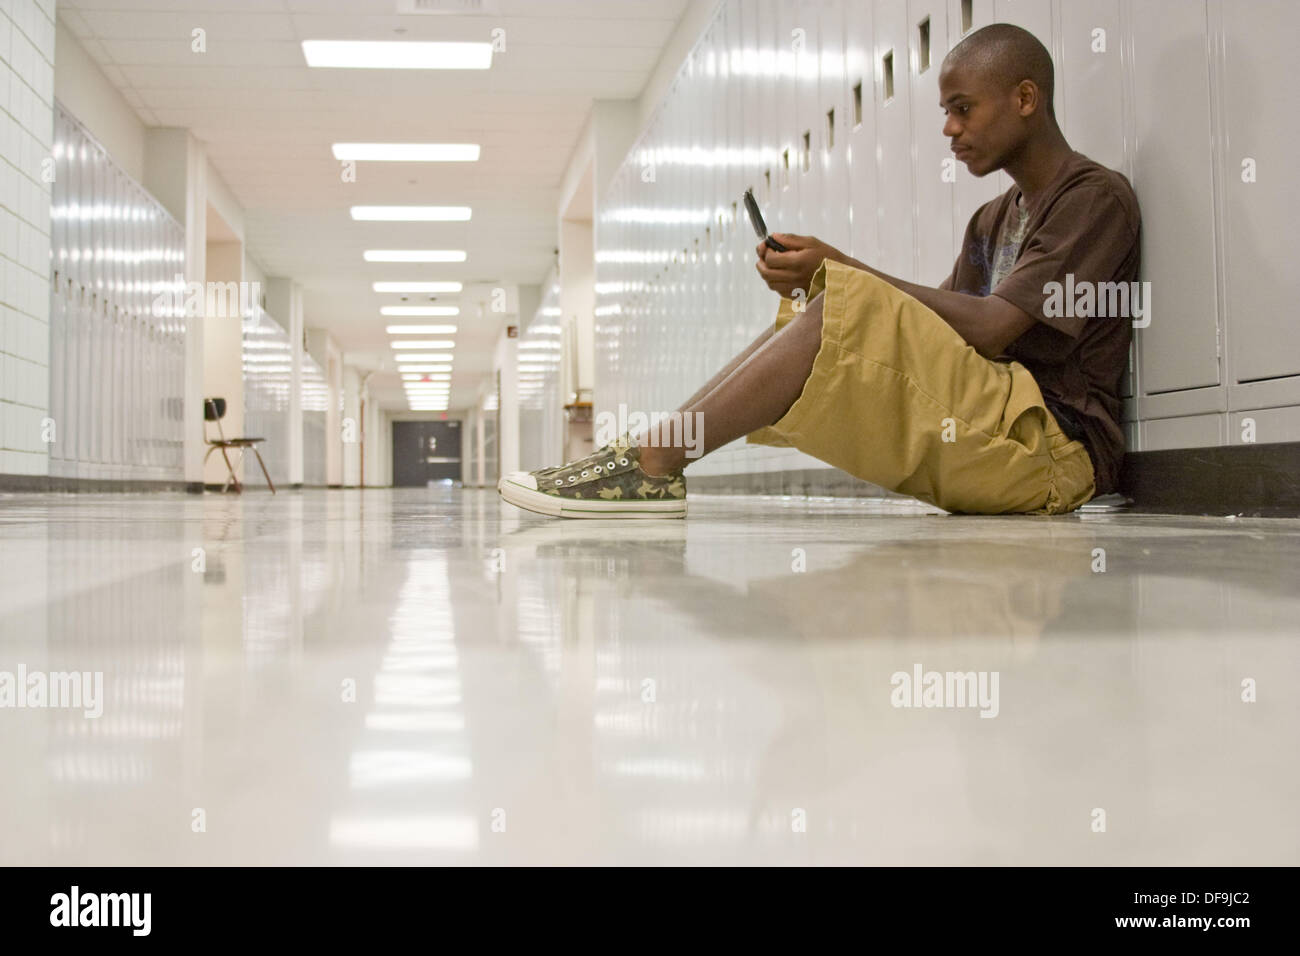 Brian Curtiss is a frequent text messenger. He´s taking classes this summer at Hazelwood East. - Stock Image